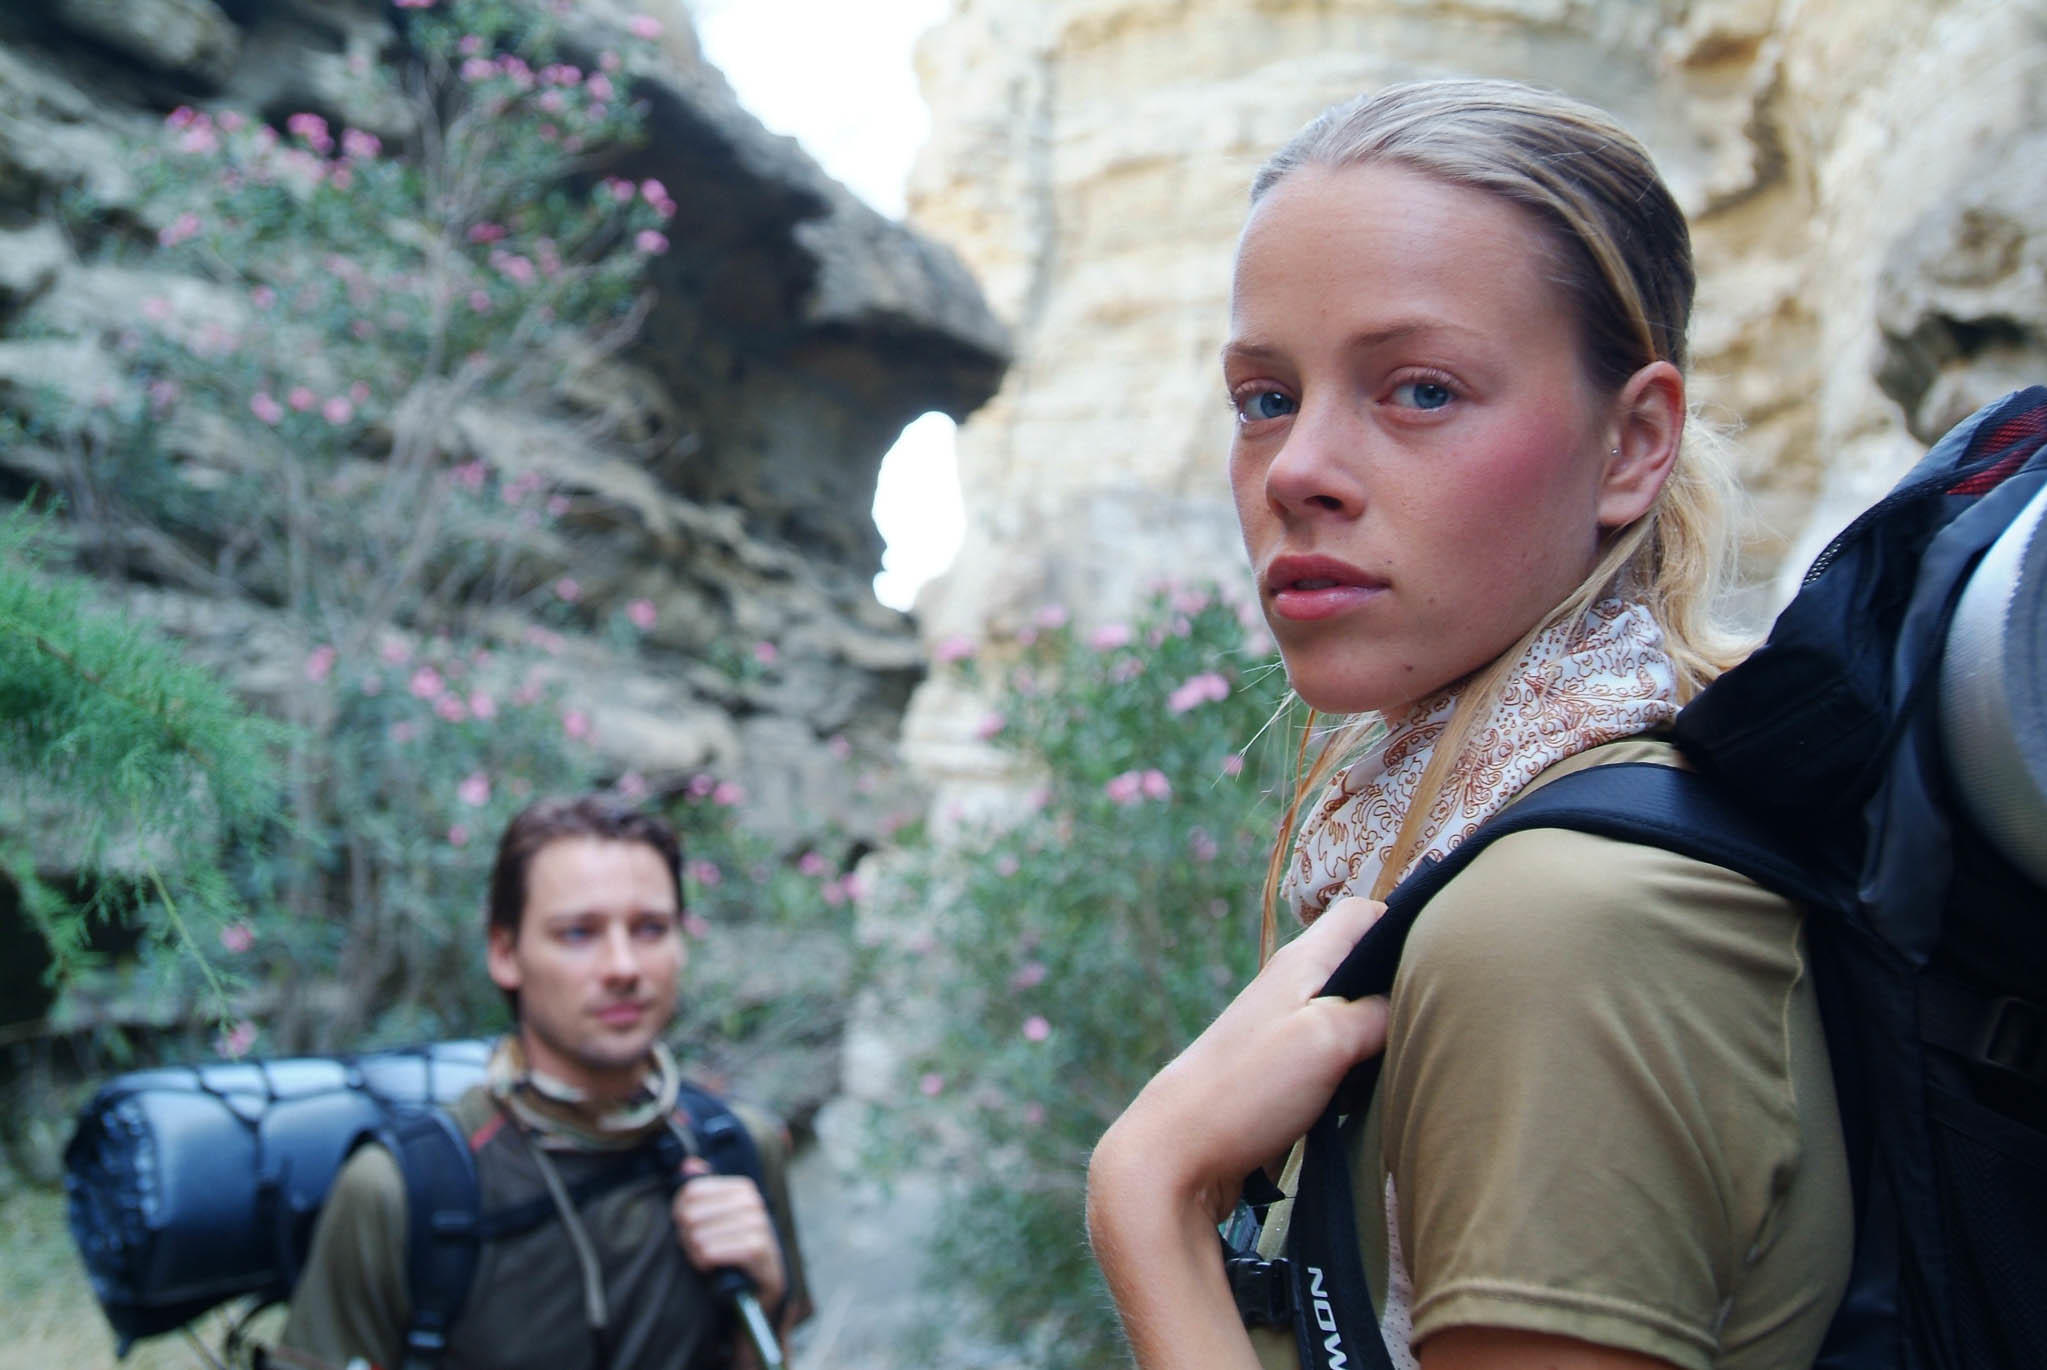 A side landscape shot of a woman and a man hiking in a gorge. Both are wearing Original Buff® as neck cooler. The woman to the front right is looking over her left shoulder into the camera. The man in the background seems distracted. The scene looks warm. Both are wearing summer hiking gear. Source: buff.eu © distributed for the promotion of the Original Buff® in hiking / trekking